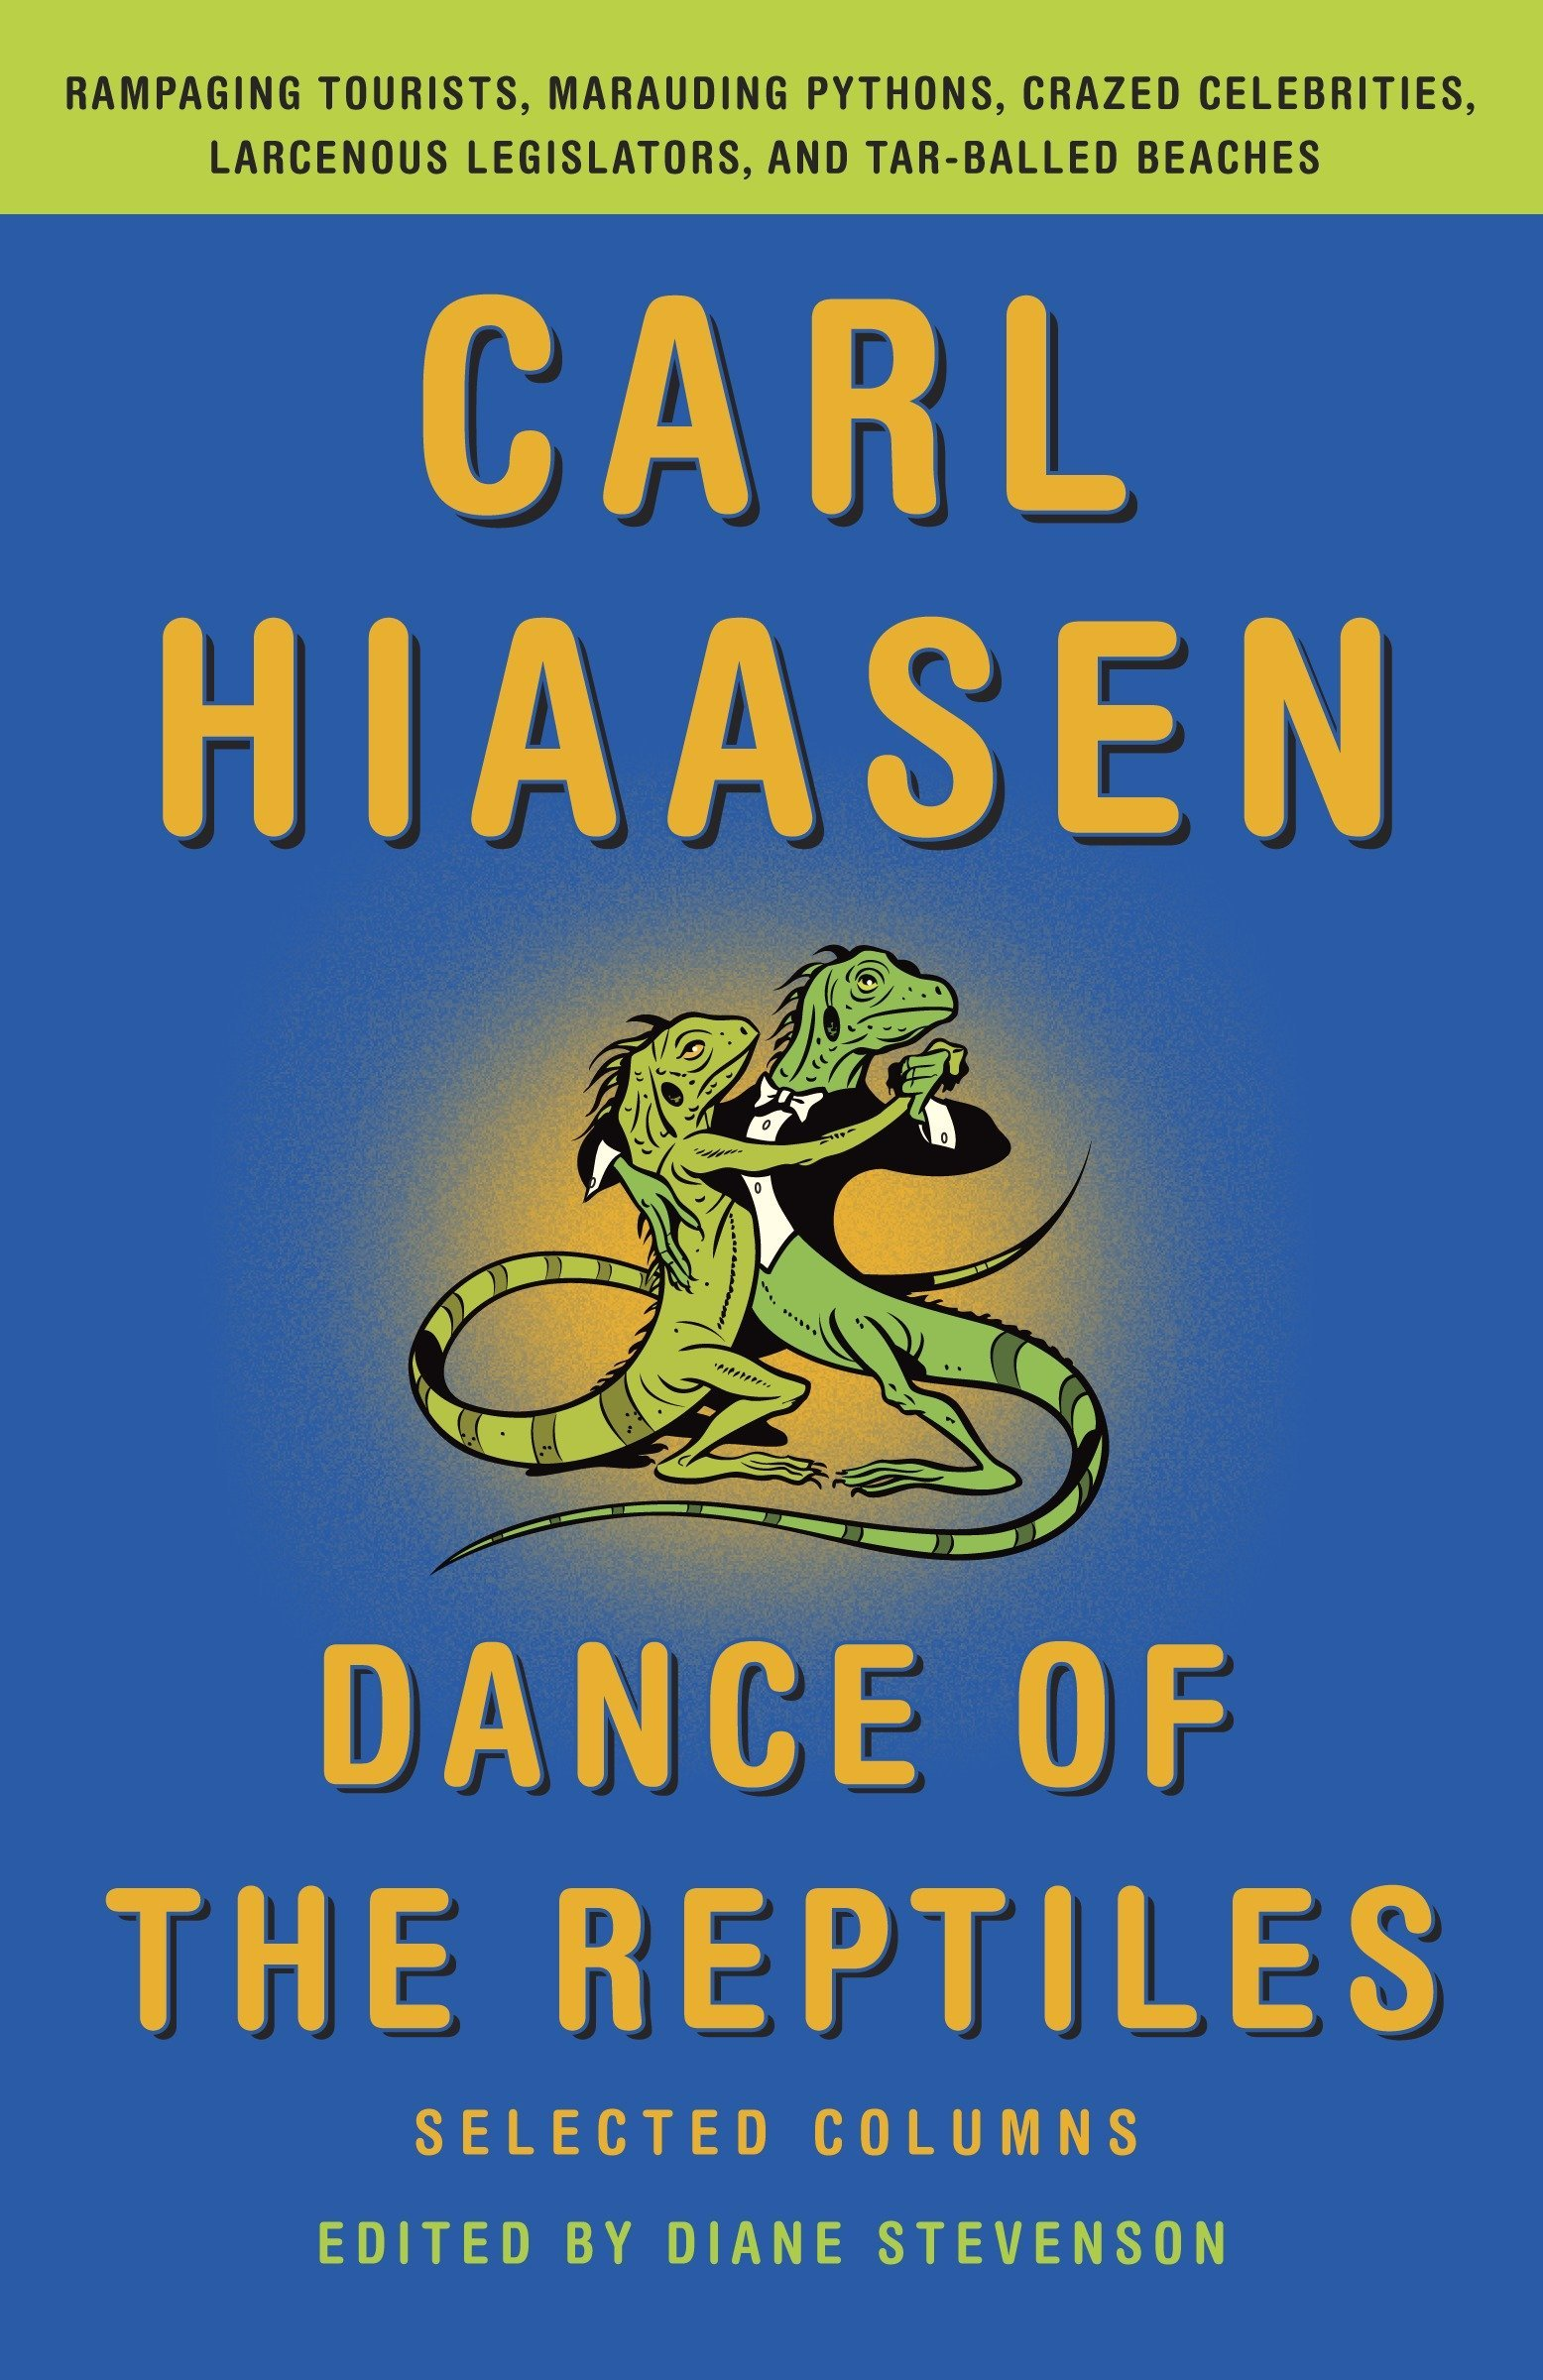 Read Online Dance of the Reptiles: Rampaging Tourists, Marauding Pythons, Larcenous Legislators, Crazed Celebrities, and Tar-Balled Beaches: Selected Columns PDF